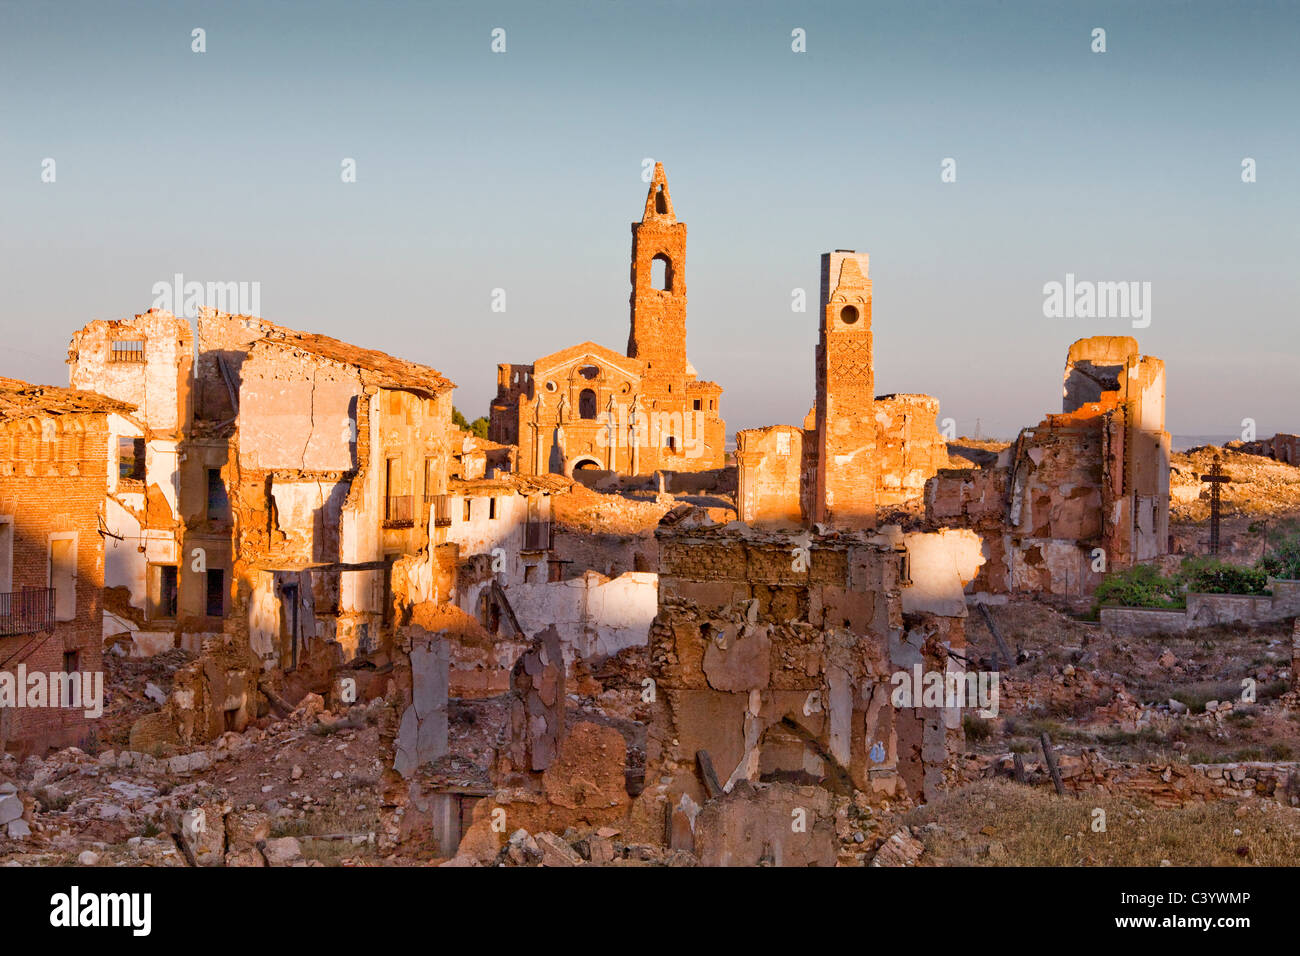 Spain, Europe, Aragon, Belchite, ecological, ruins, tower, rook, old, new - Stock Image